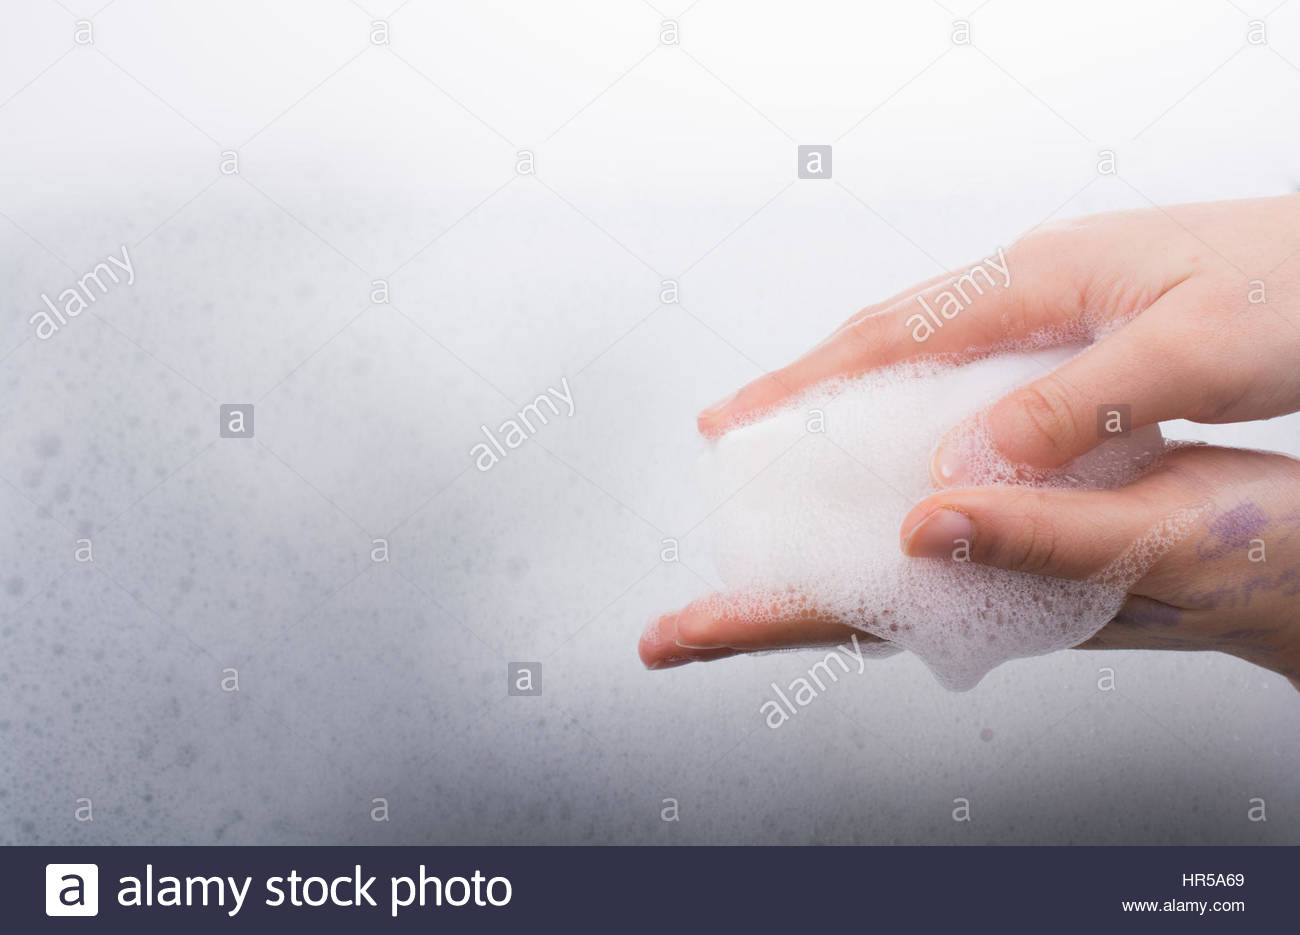 Hand washing and soap foam on a foamy background Stock Photo 1300x935